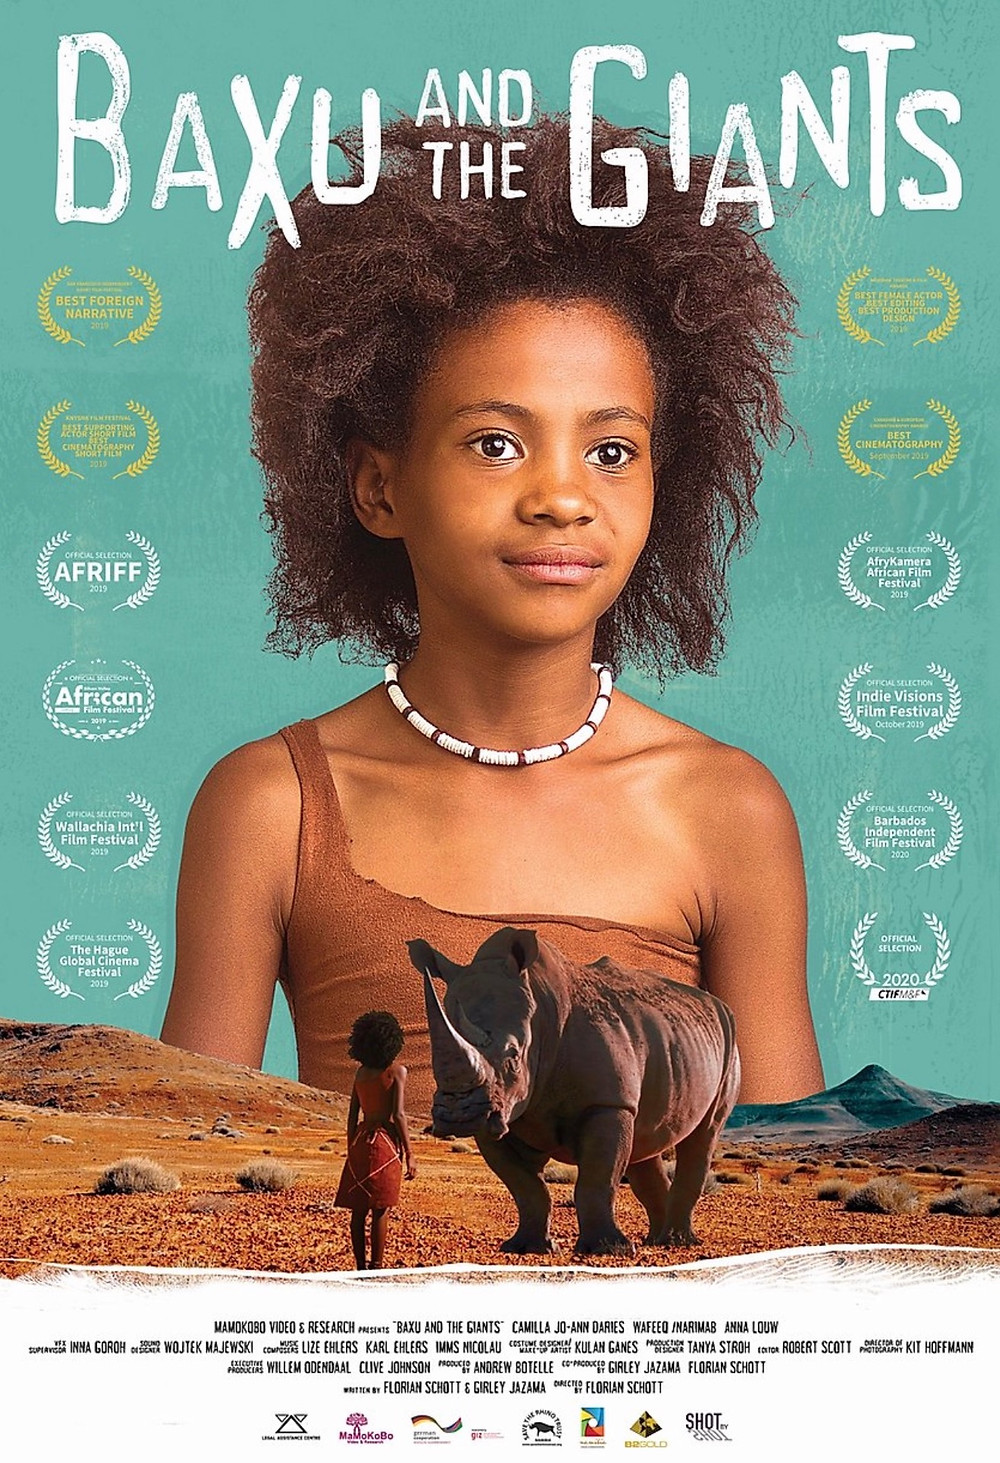 The main character, Baxu is placed in the centre of the this film poster, behind her is a turquoise background. Below her stands a smaller image of herself with a rhino standing on red-orange soil.